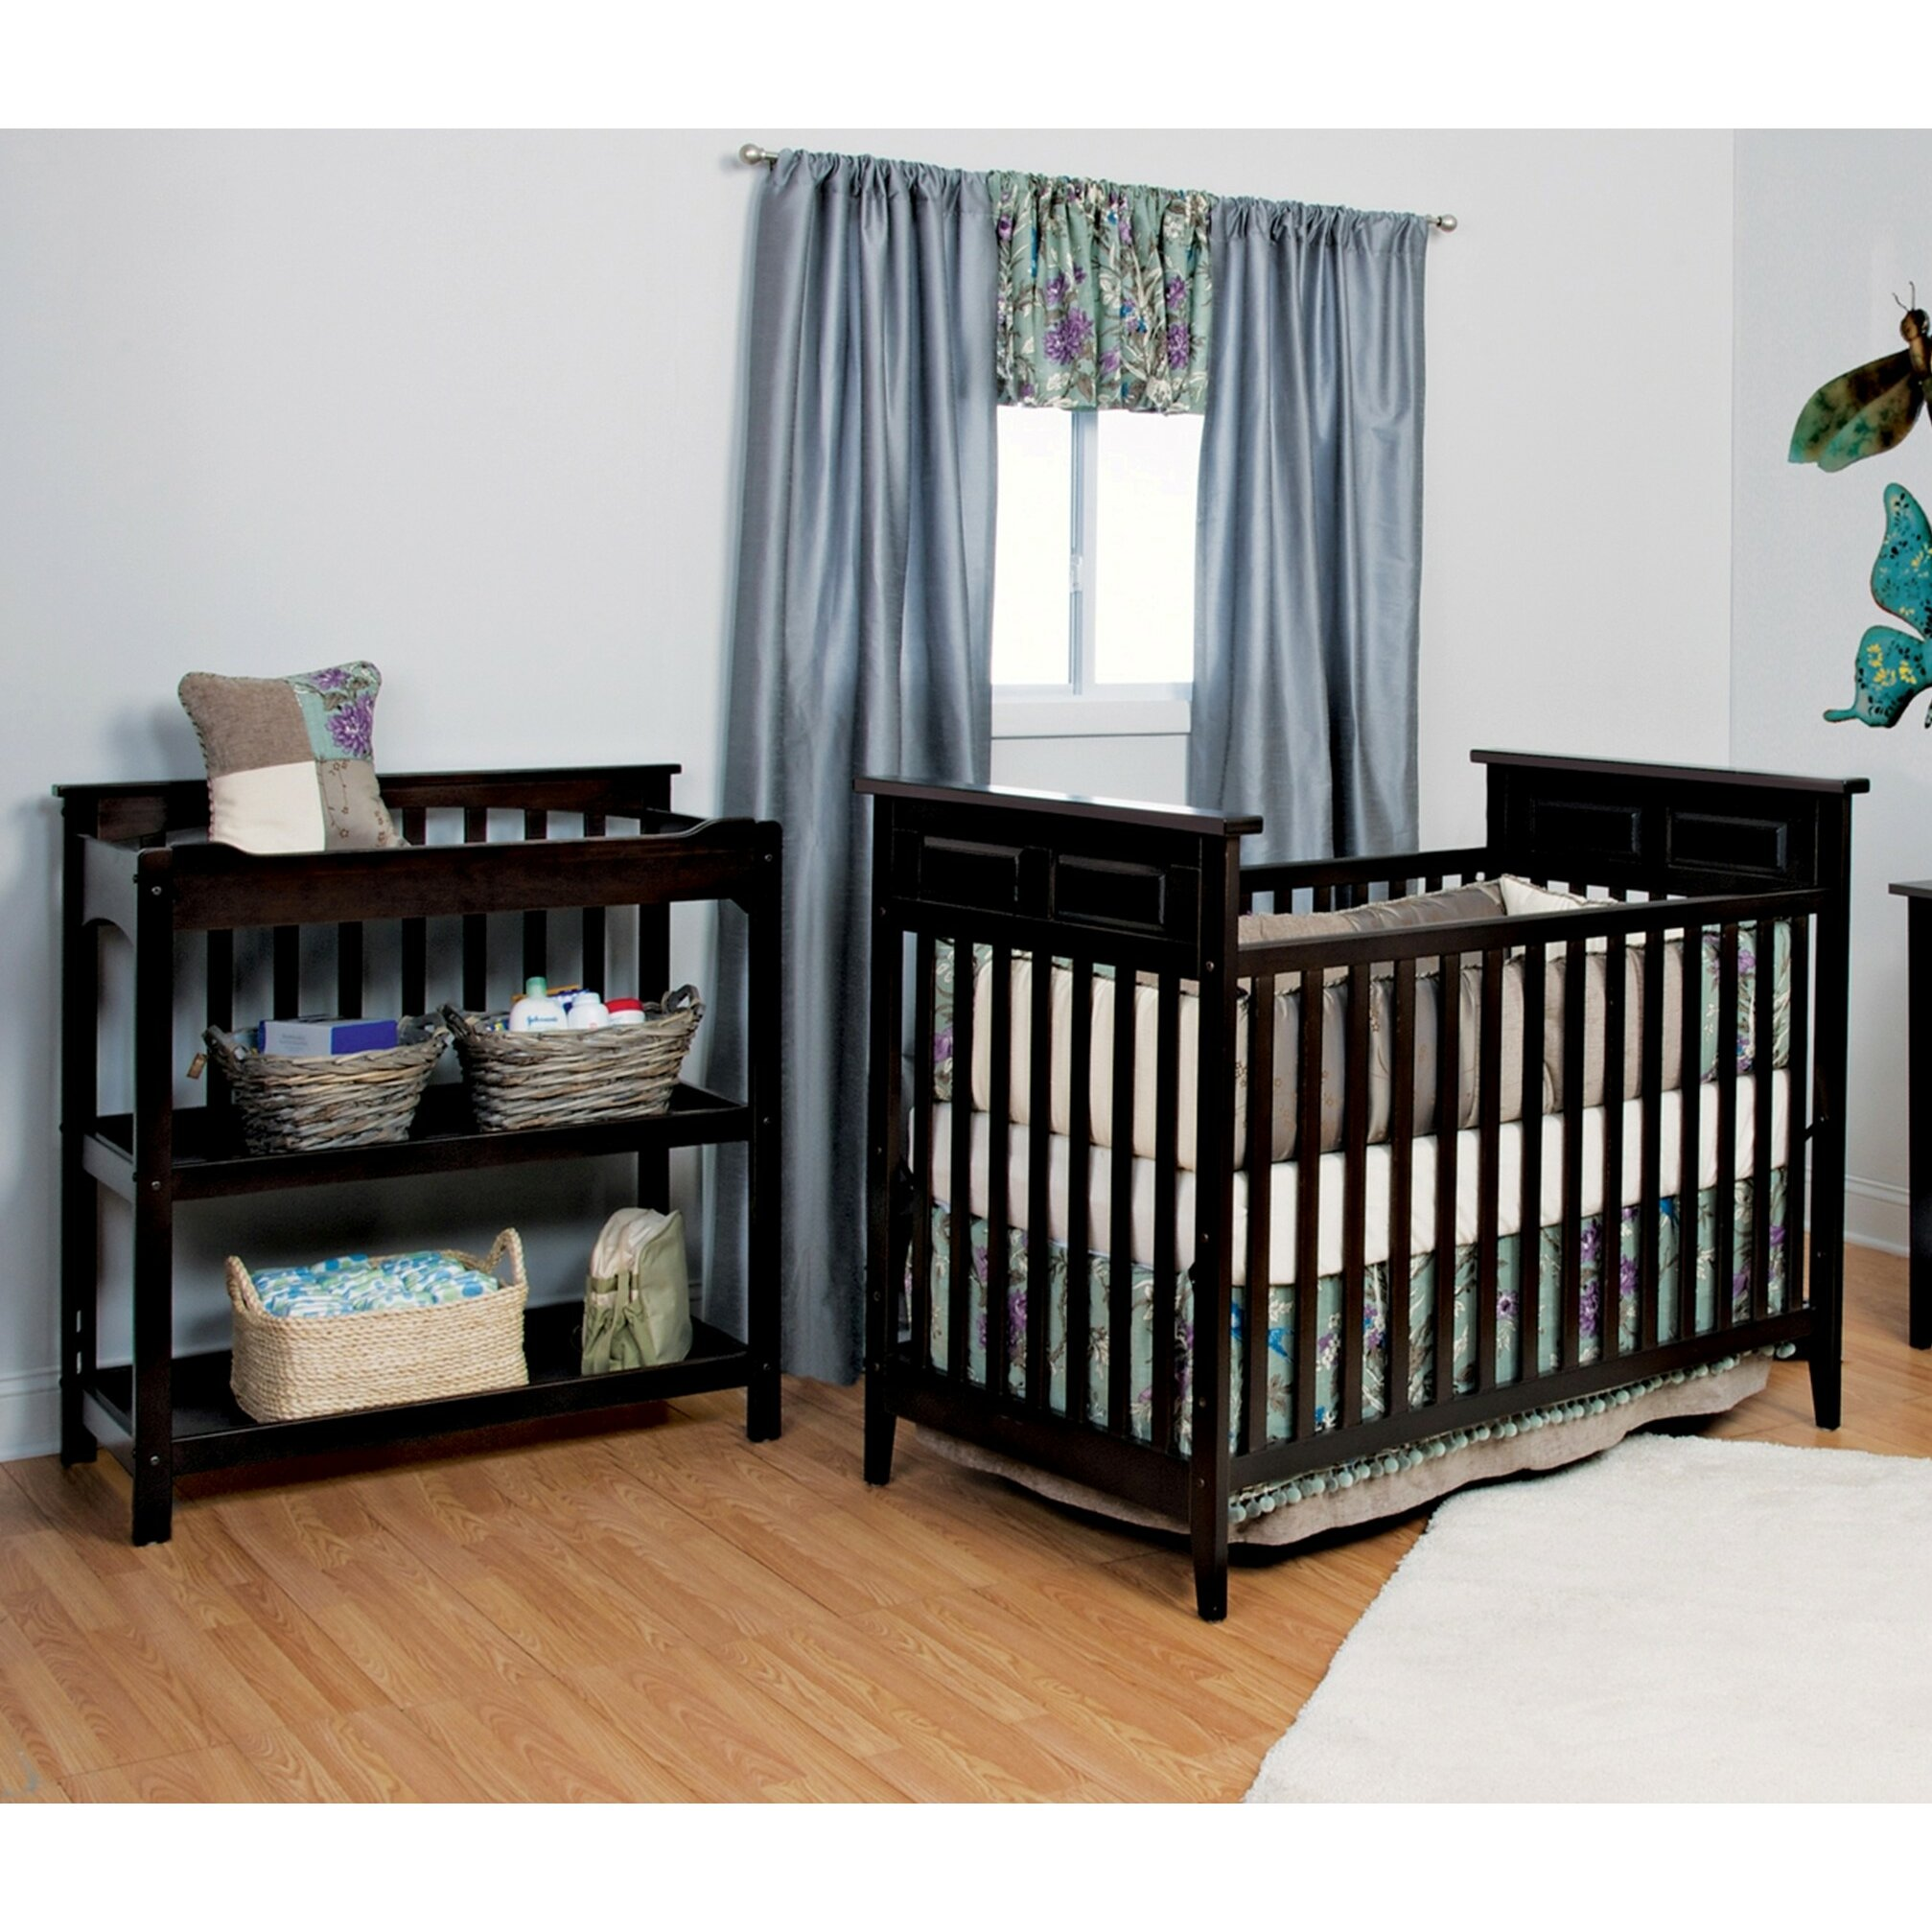 Child craft logan 2 piece crib set reviews wayfair for Child craft crib reviews